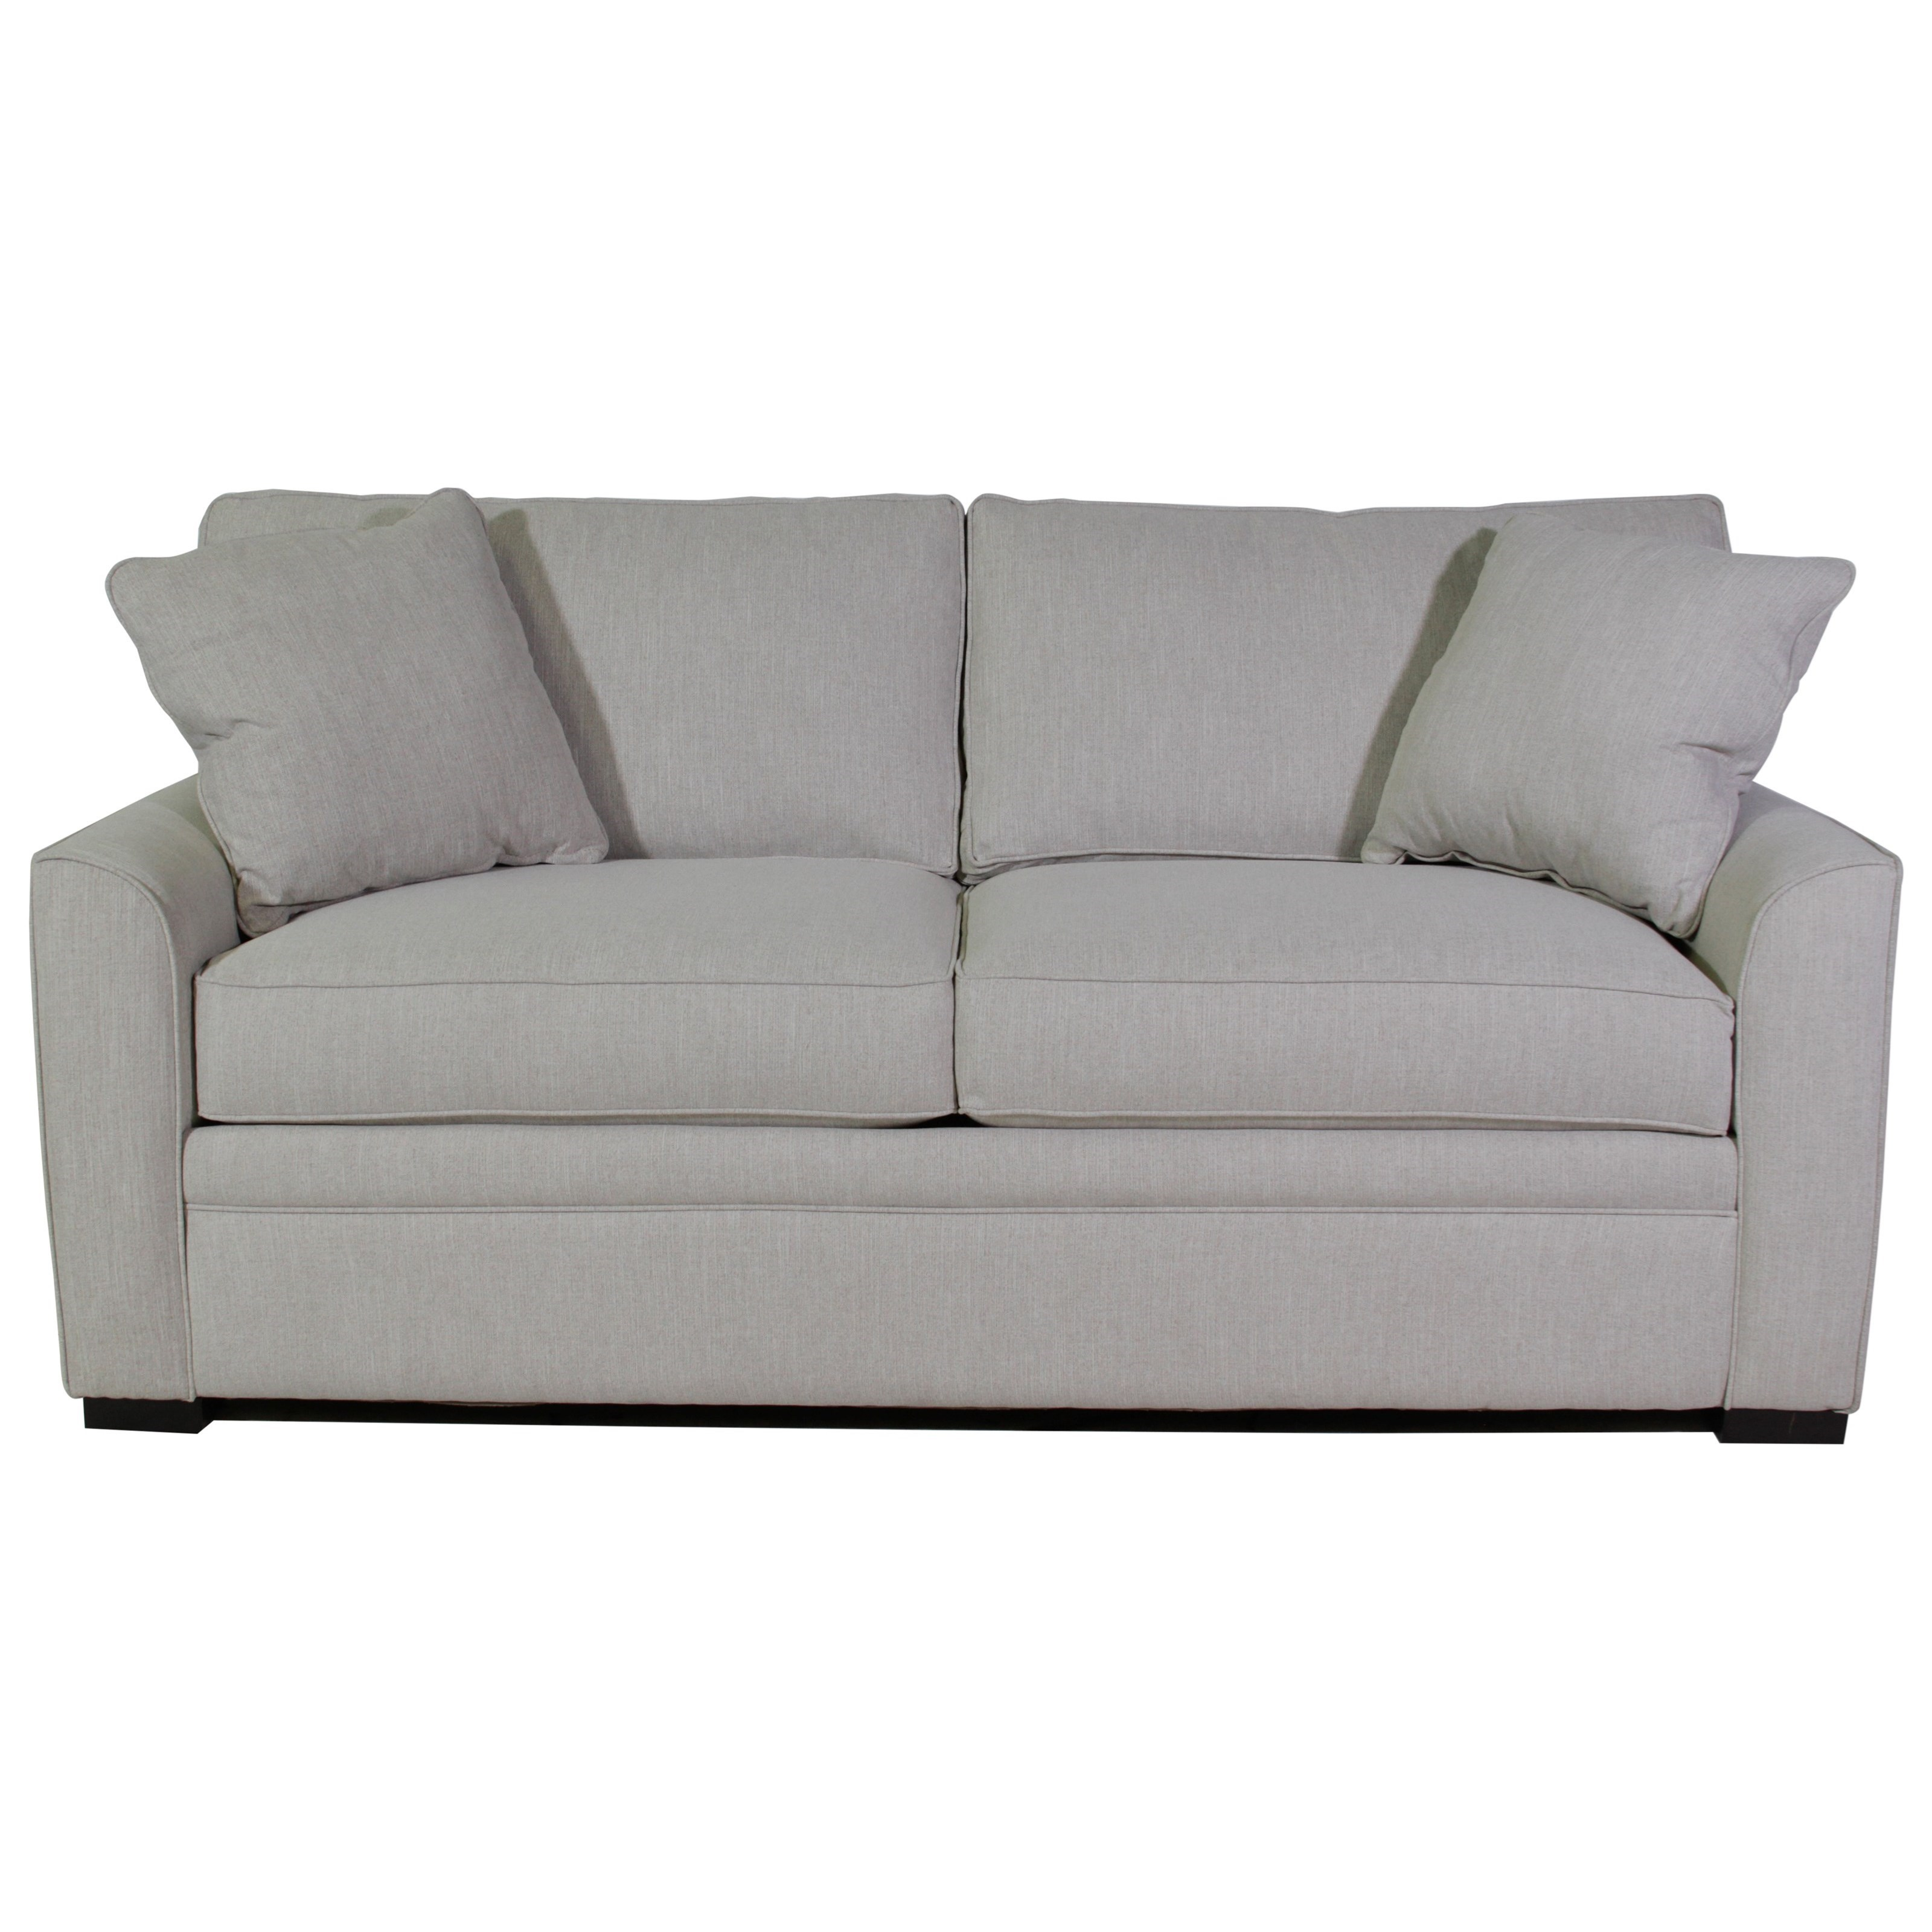 Jonathan Louis Blissful Full Sofabed - Item Number: 109-21MF-Malibu Sand